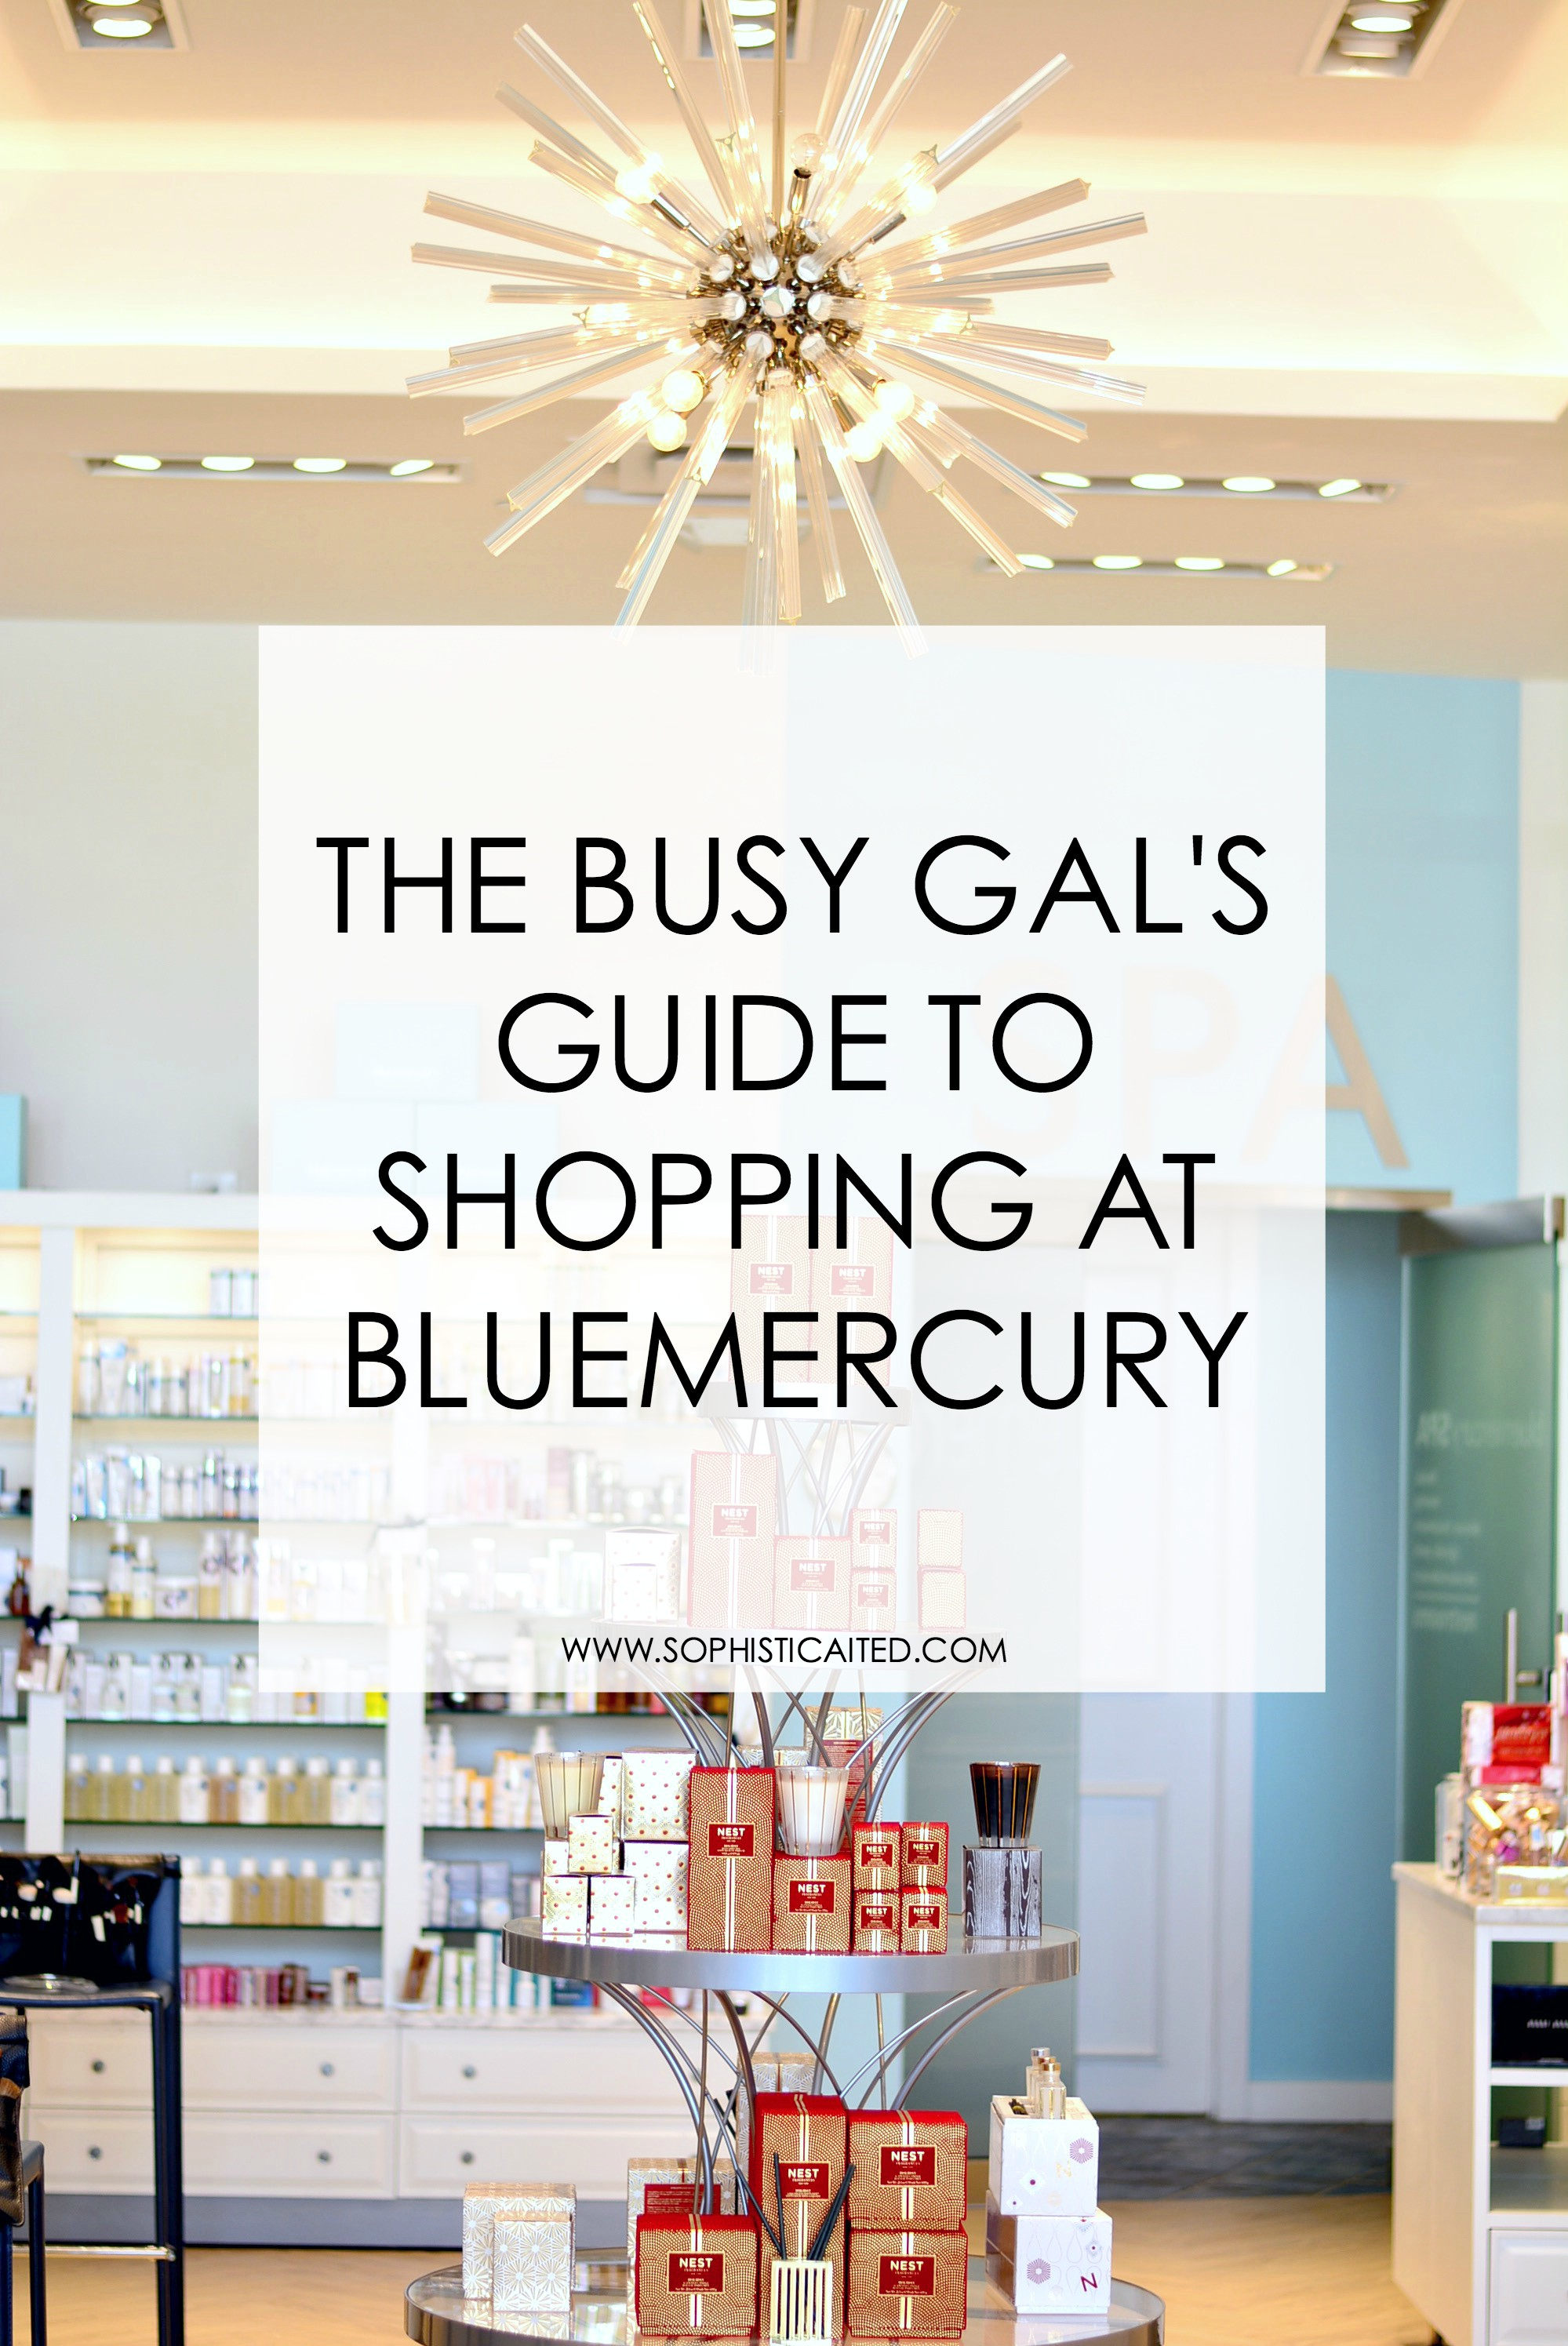 The Busy Gal's Guide to shopping at Bluemercury